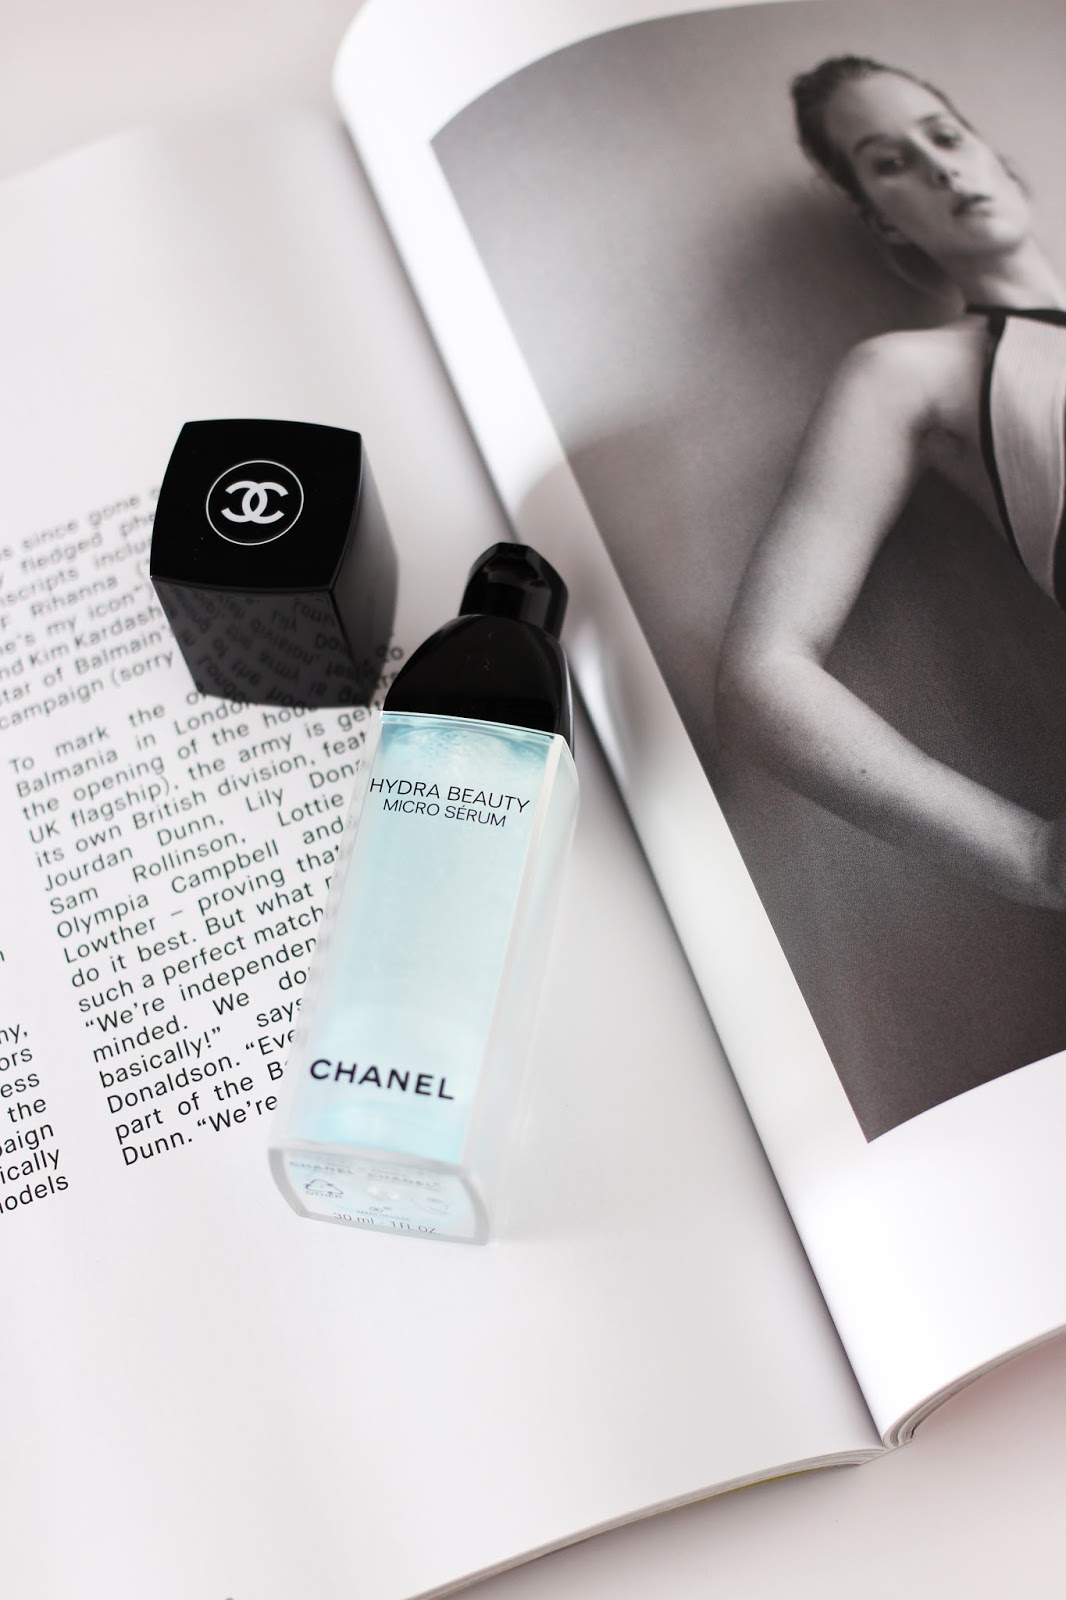 Chanel Hydra Beauty Micro Serum Skincare for Hydration and plump skin